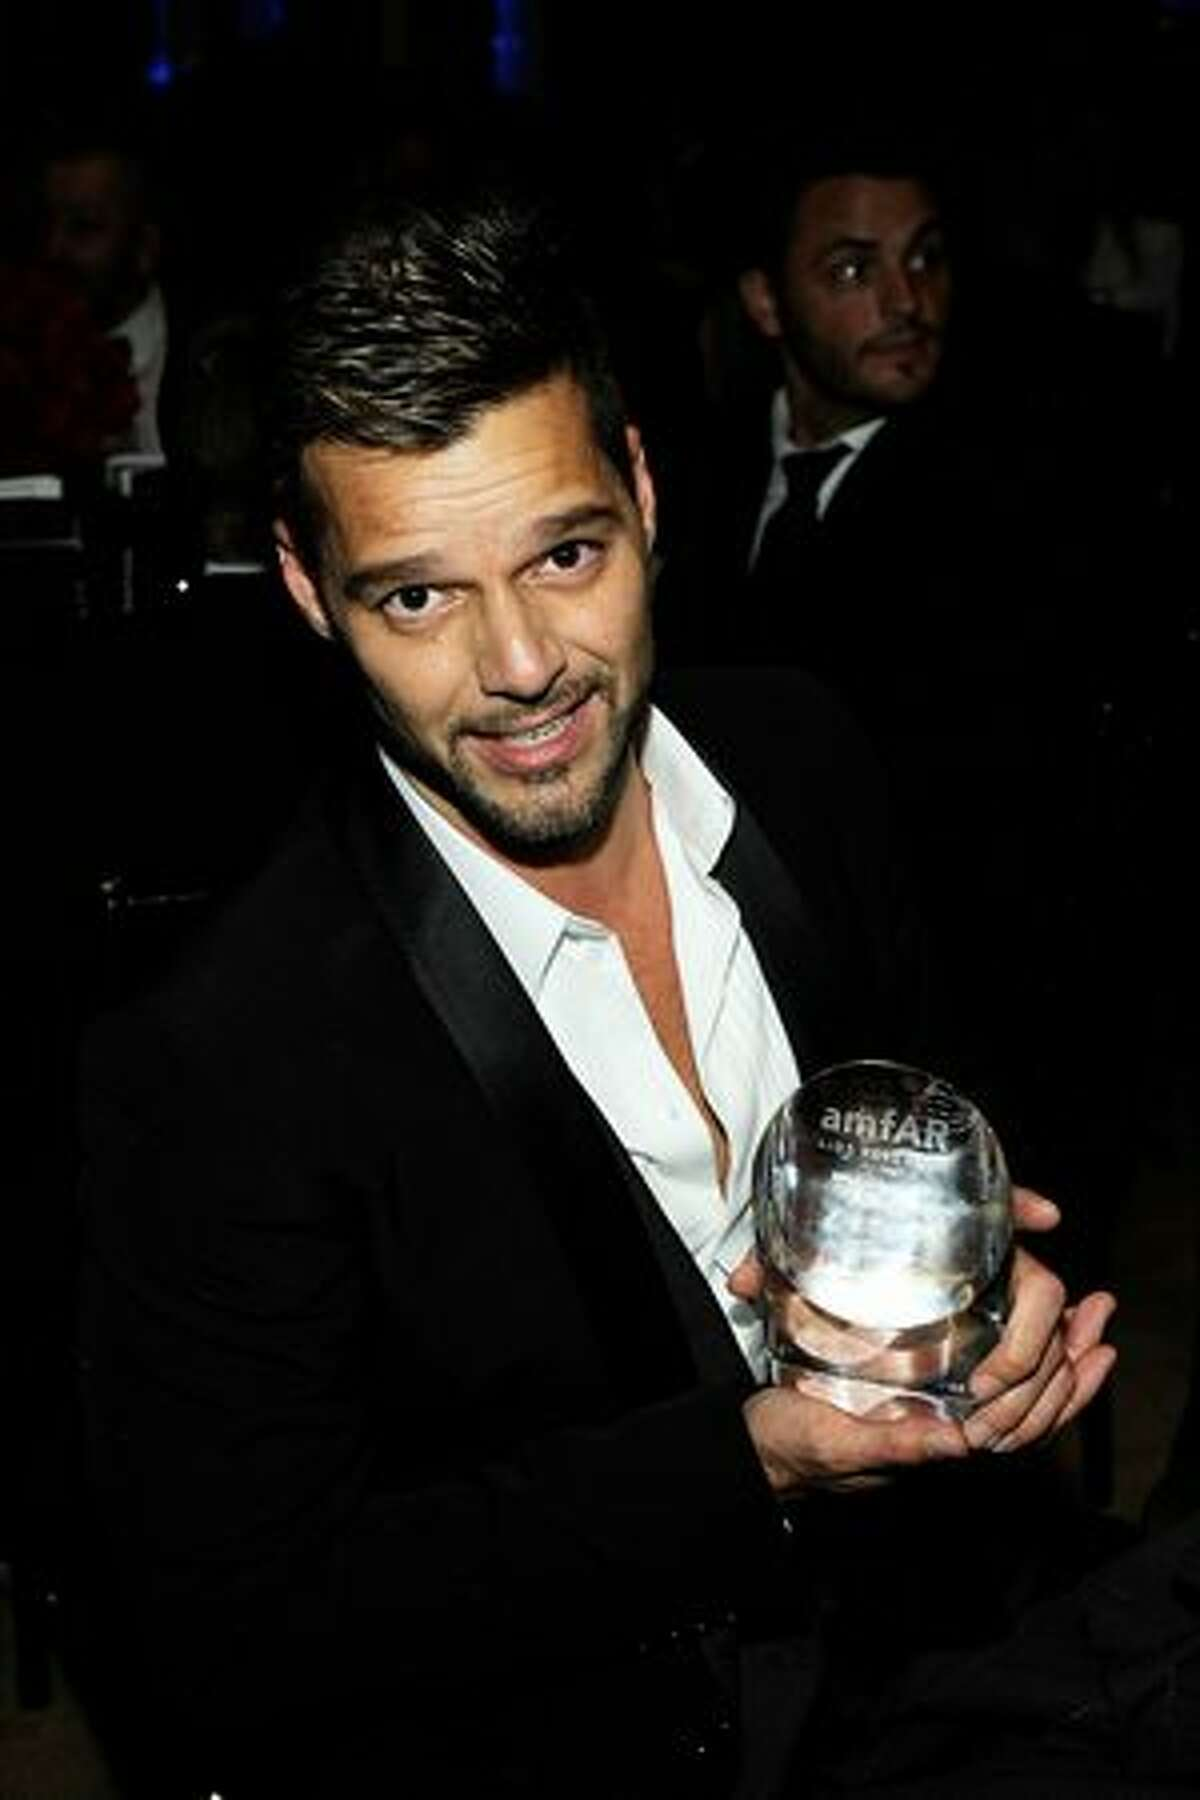 Singer Ricky Martin attends the 2010 amfAR New York Inspiration Gala at The New York Public Library.